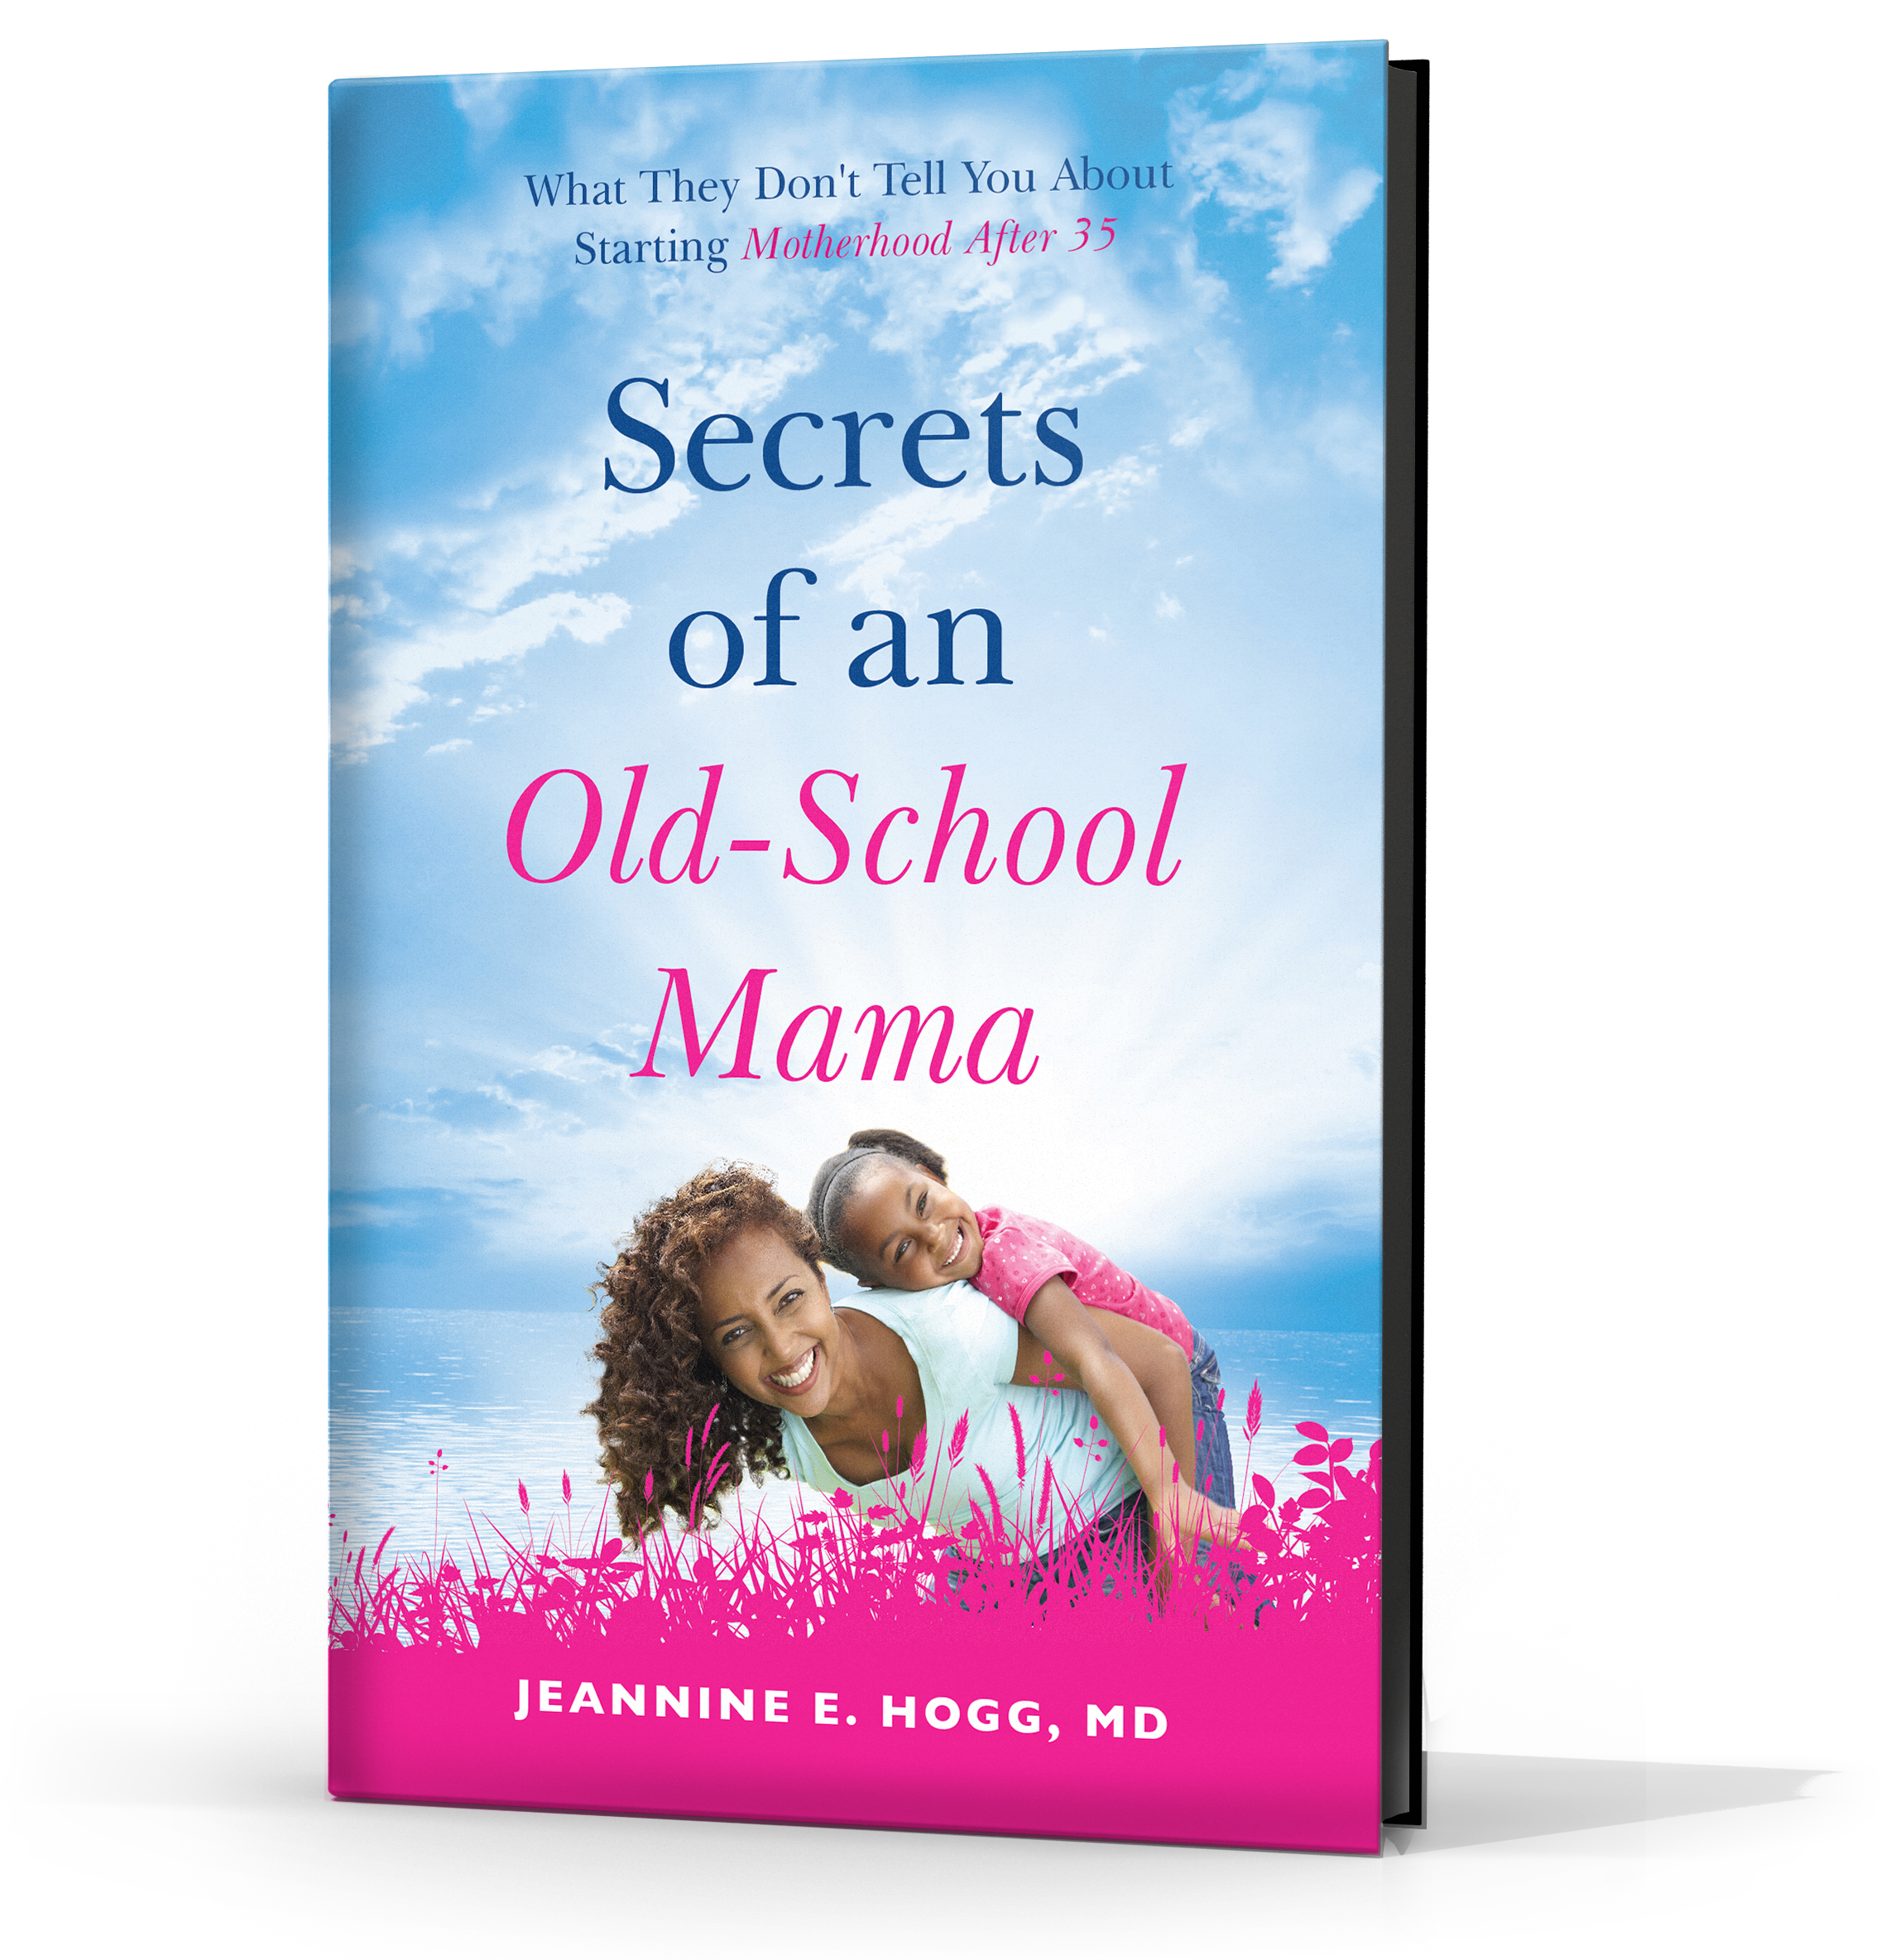 Pediatrician and Bestselling Author Releases Parenting Book to Challenge the Norms of the Traditional Family